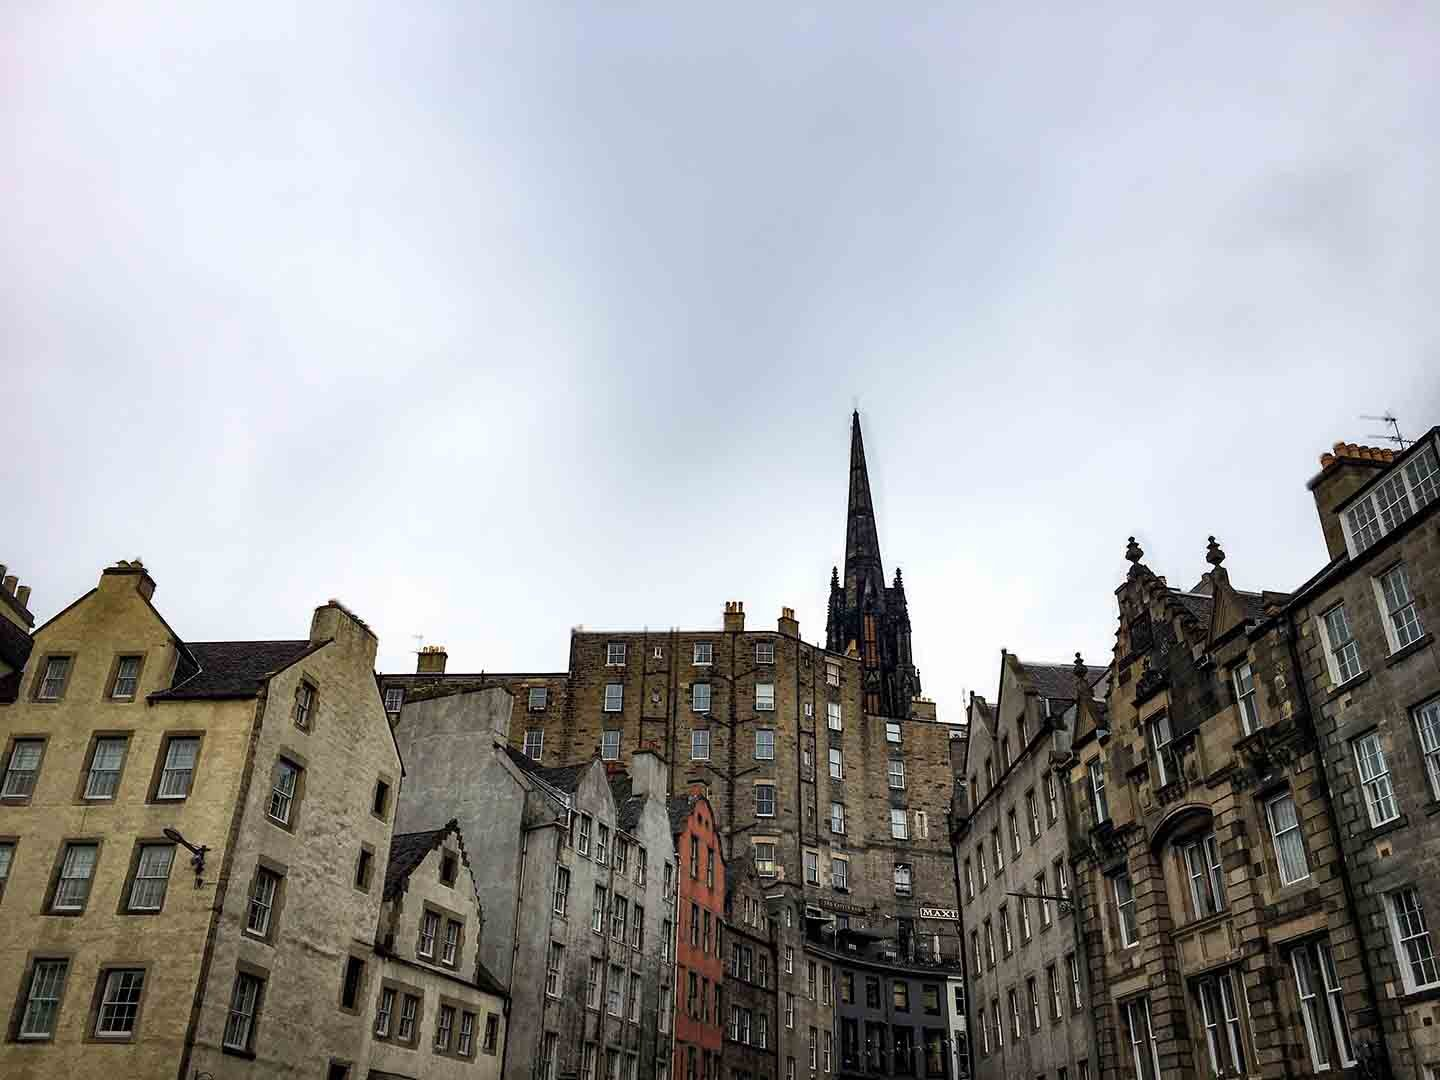 Buildings in Edinburgh's Old Town | Image © ExpatAlli.com